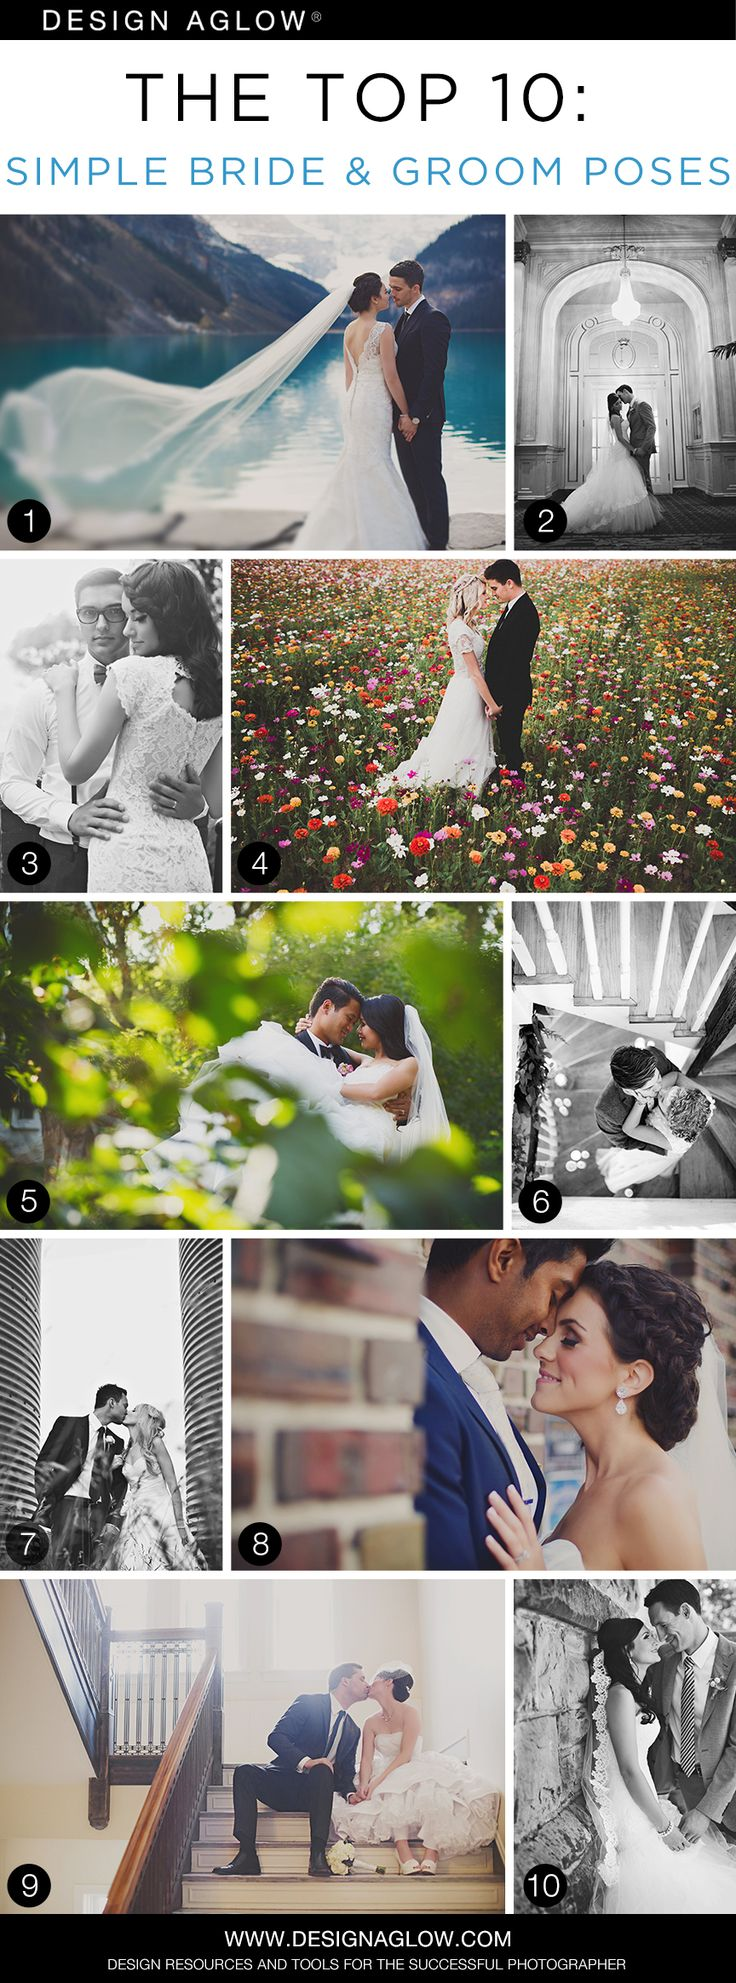 The Top 10: Simple Bride & Groom Poses